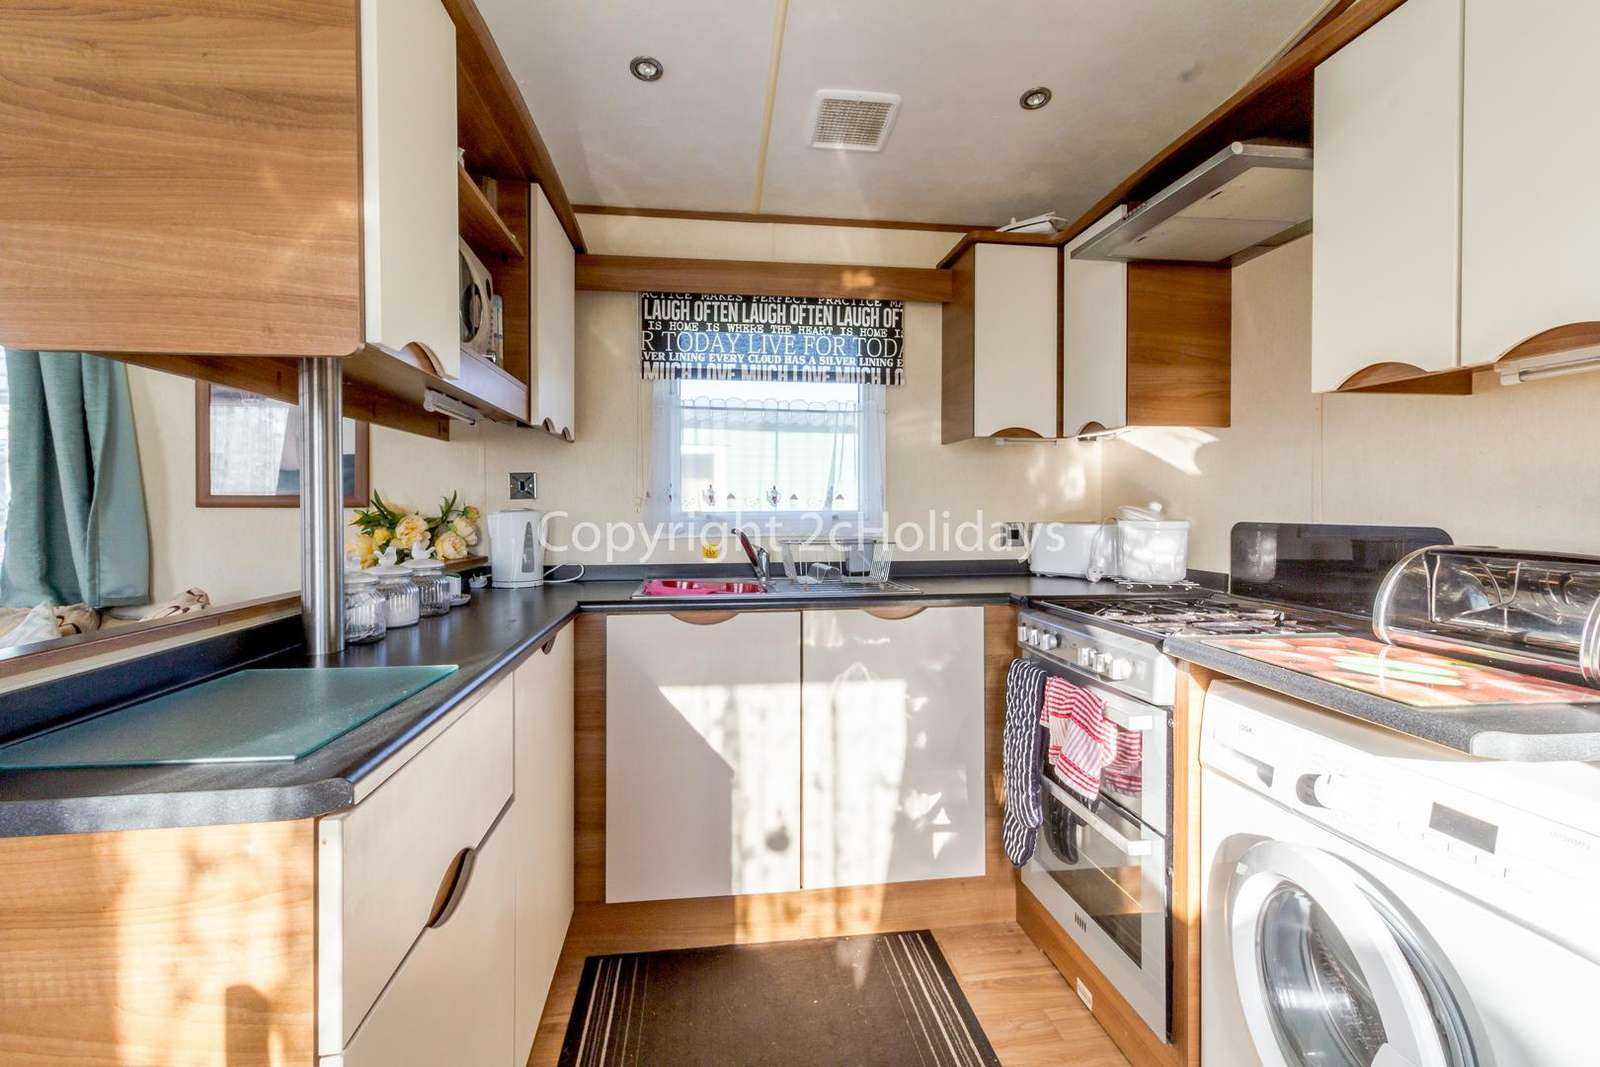 You can even find a washing machine in this holiday home!